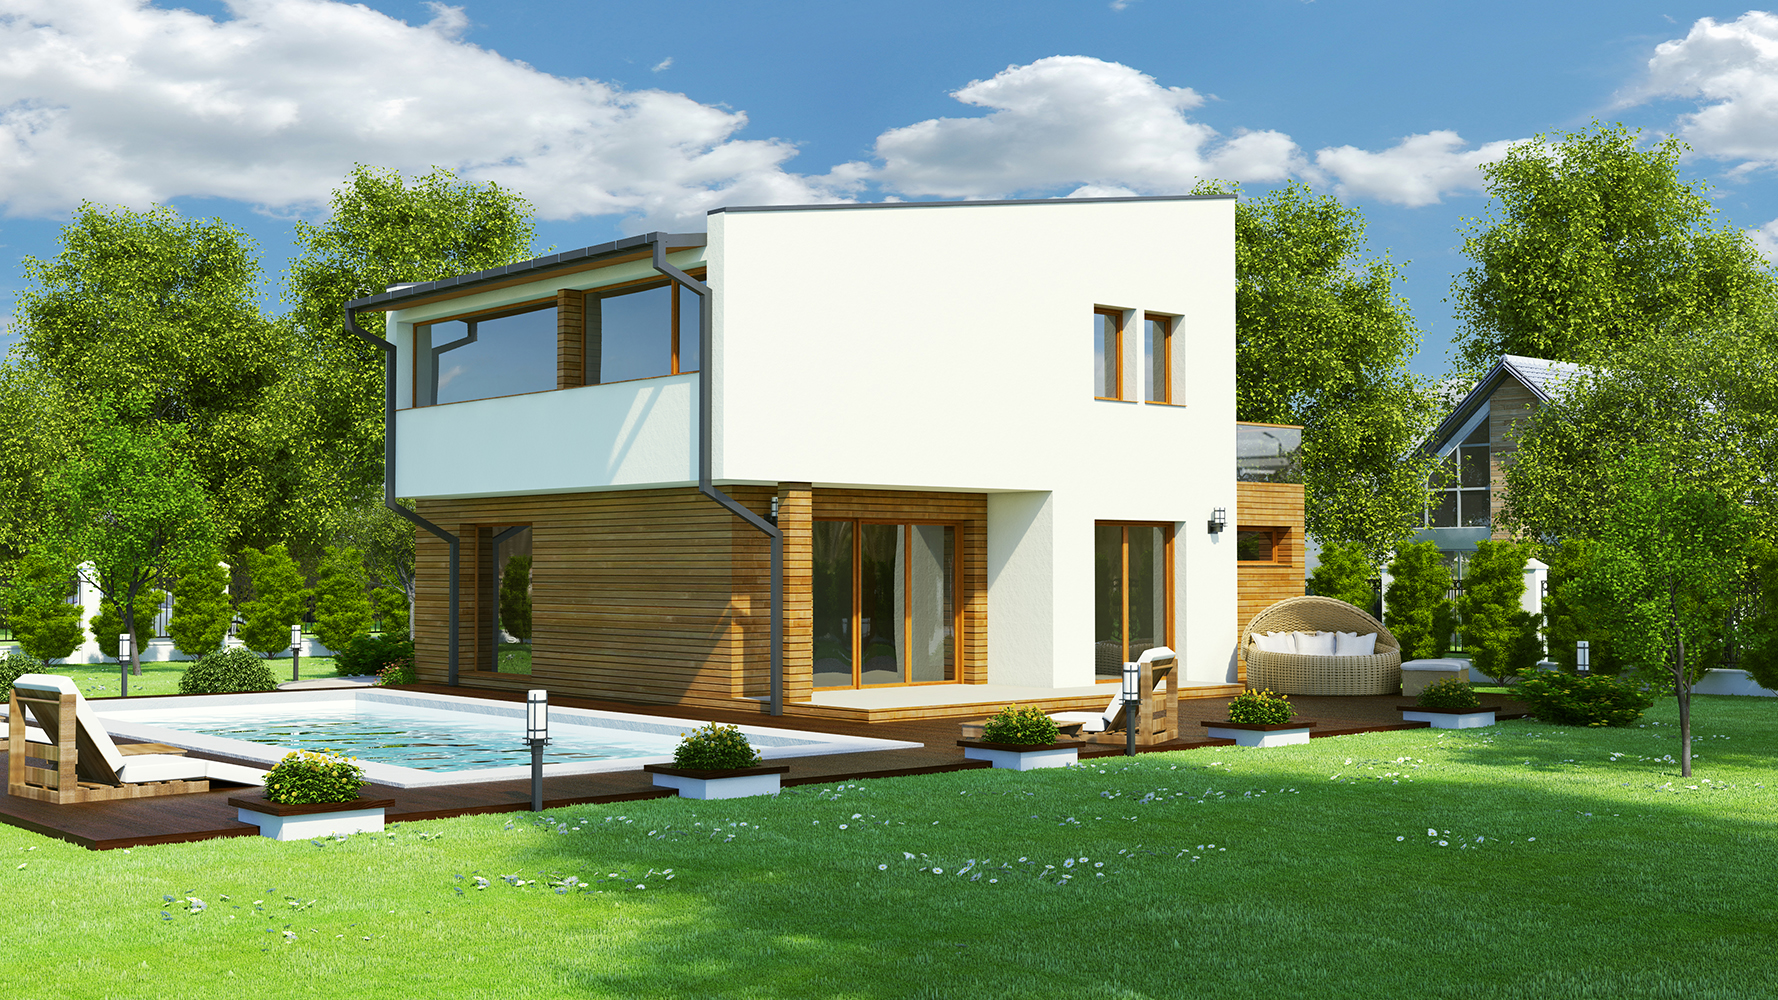 Plan maison contemporaine bc 25 156m2 for Plans maisons contemporaine